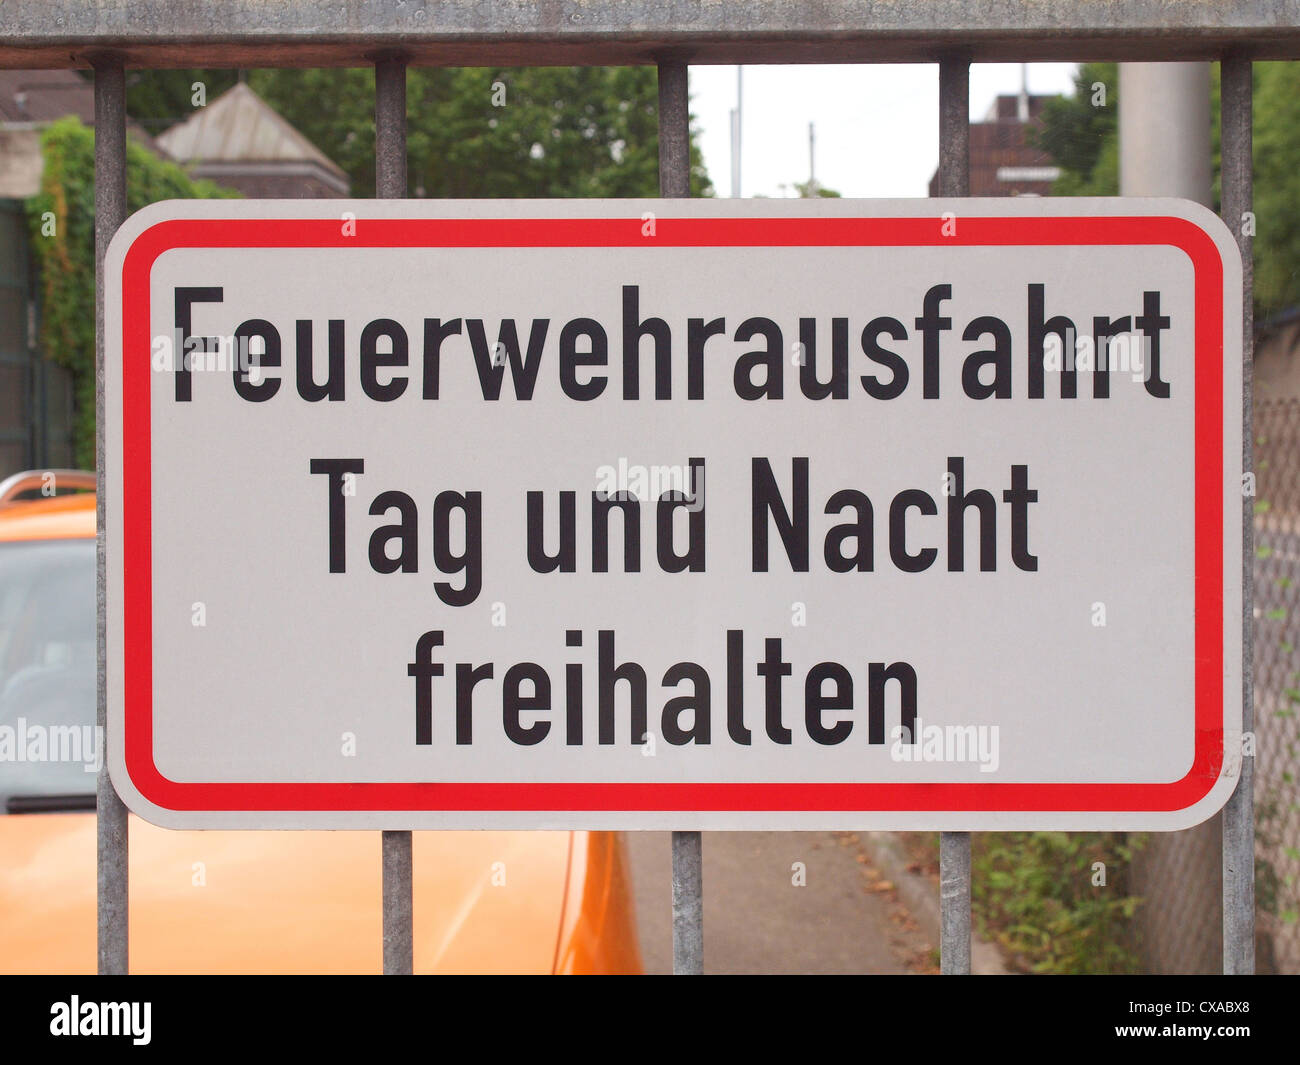 A fire lane road sign in German, meaning to leave exit free all day and night - Stock Image